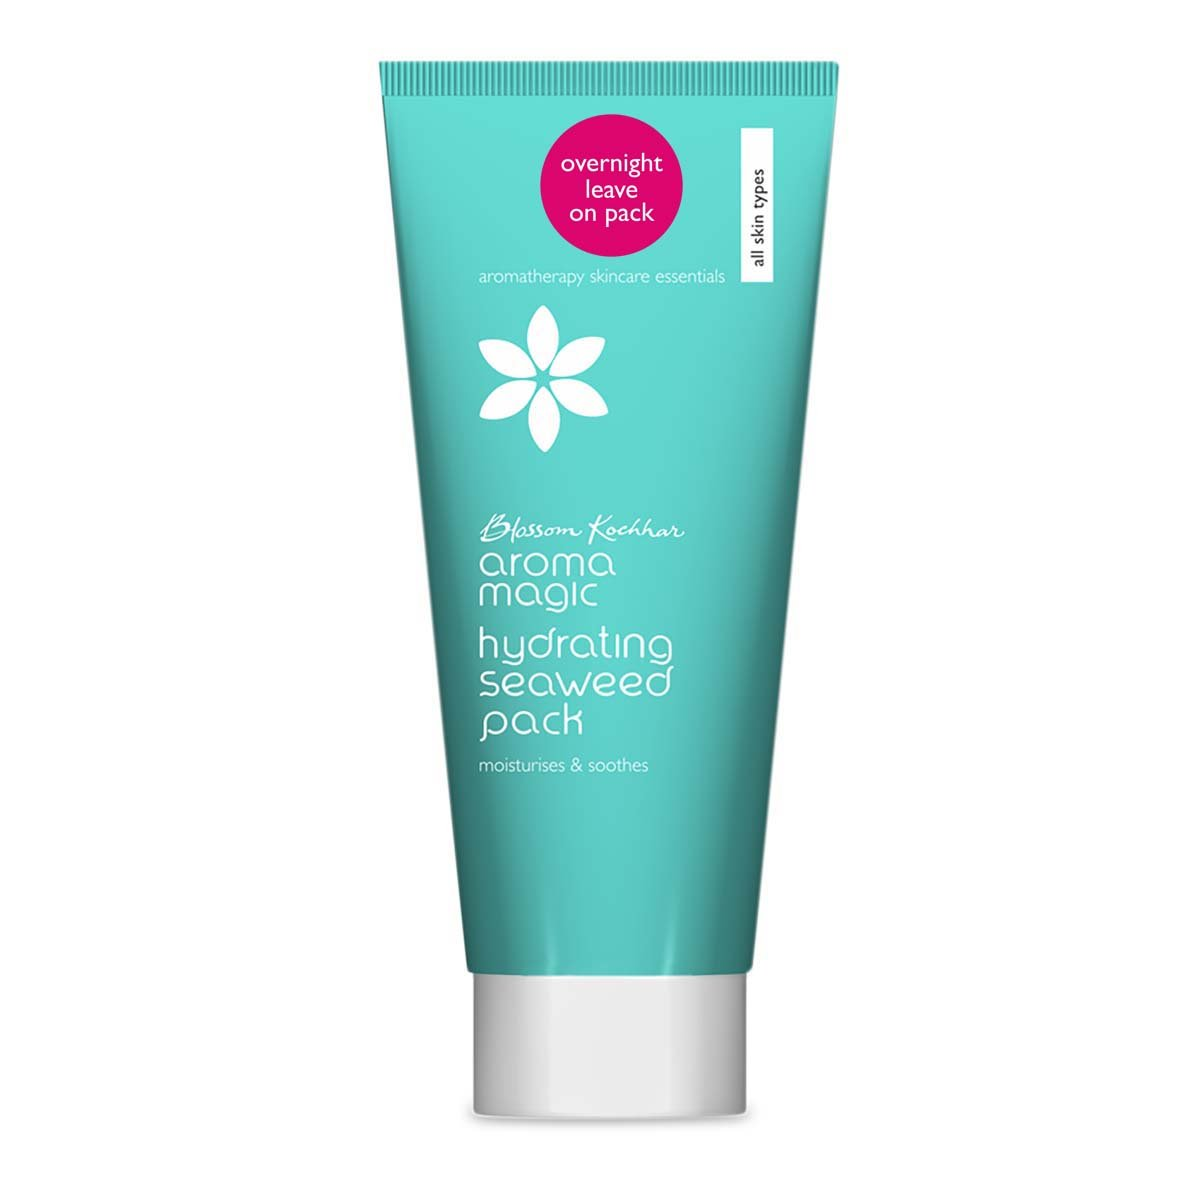 Aroma Magic Hydrating Seaweed Pack Moisturizes & Soothes